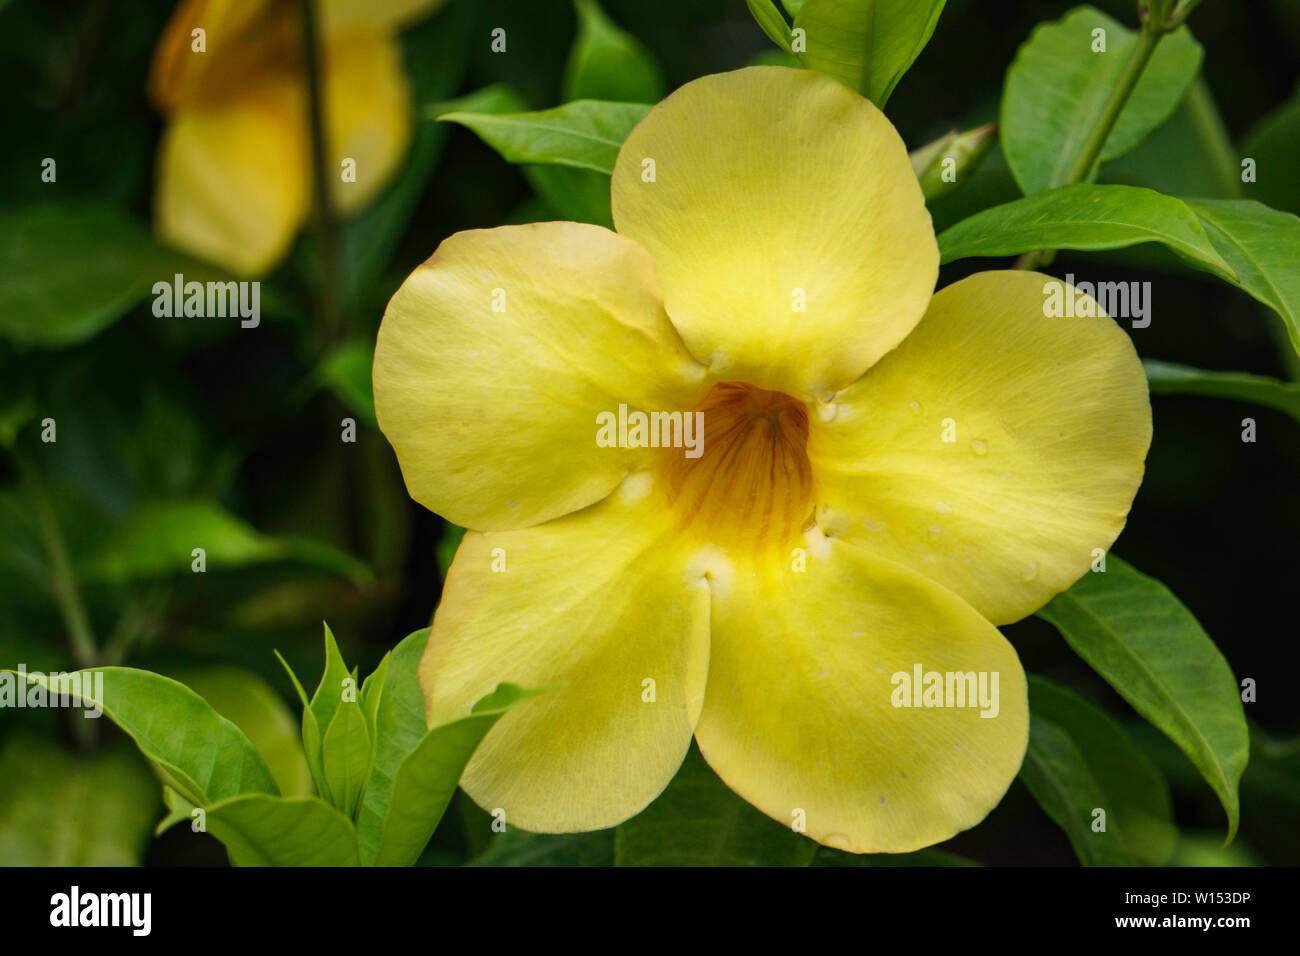 Flower Hd High Resolution Stock Photography And Images Alamy